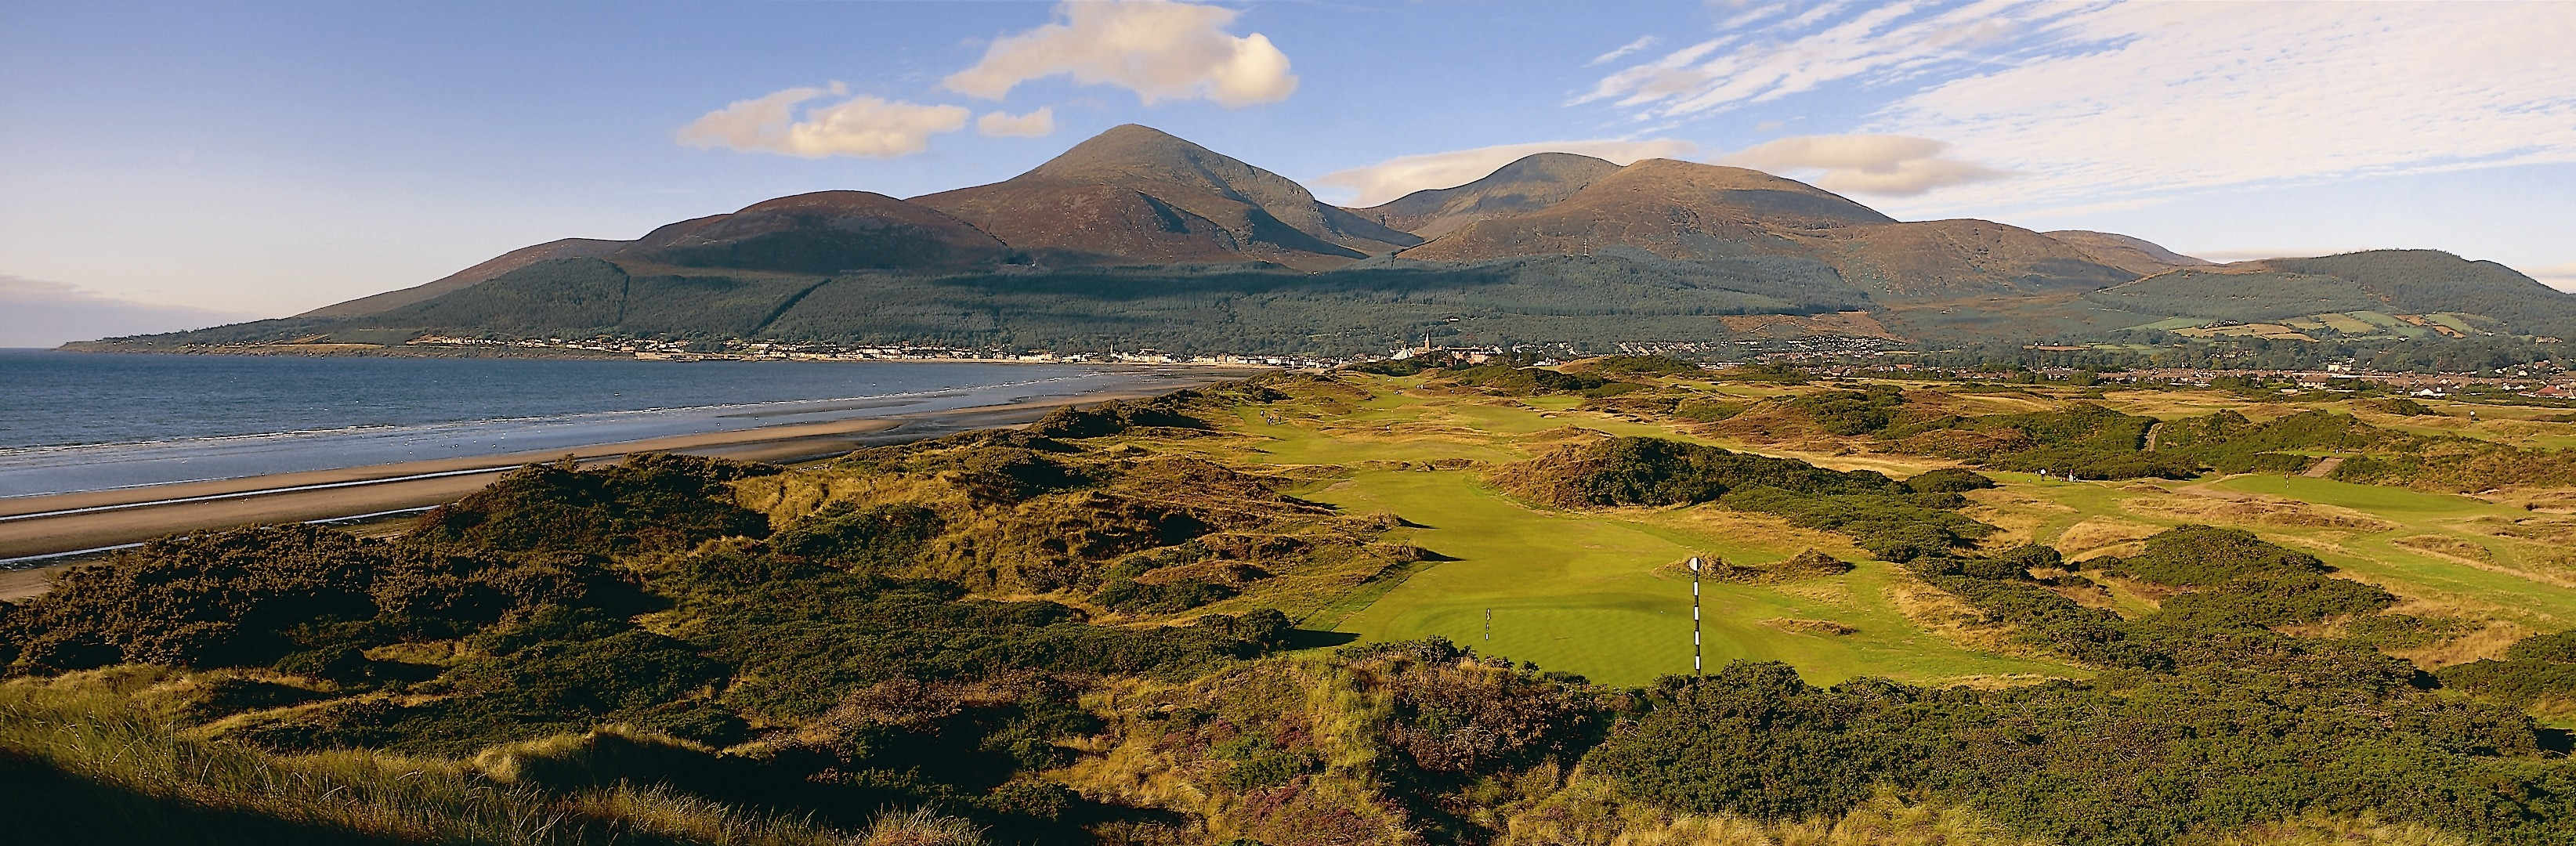 Di Golf Royal County Down 1 Celtic Connection